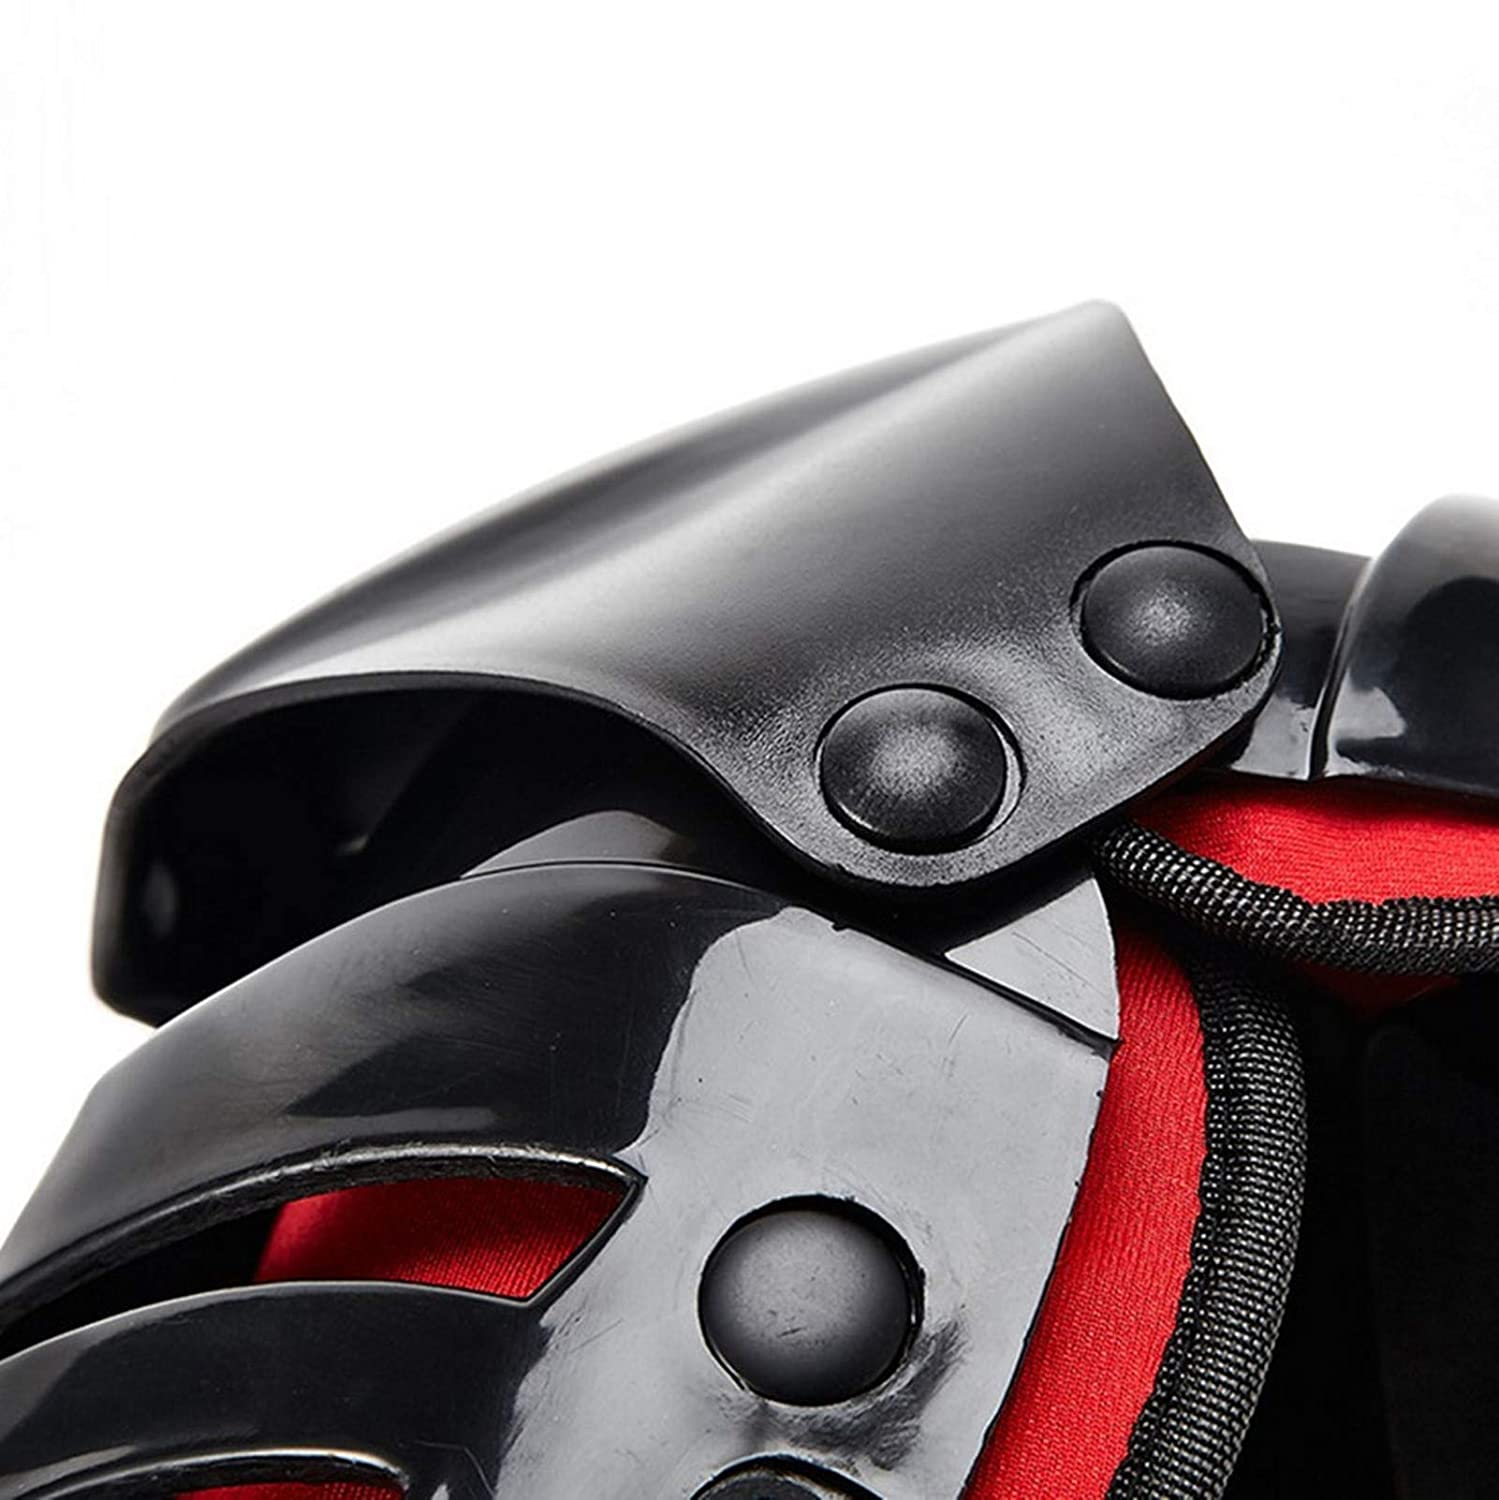 Mczone 1 Pair of Adults Fashion Knee Shin Armor Protect Guard Pads Accessories with Plastic Cement Hook for Motorcycle Black